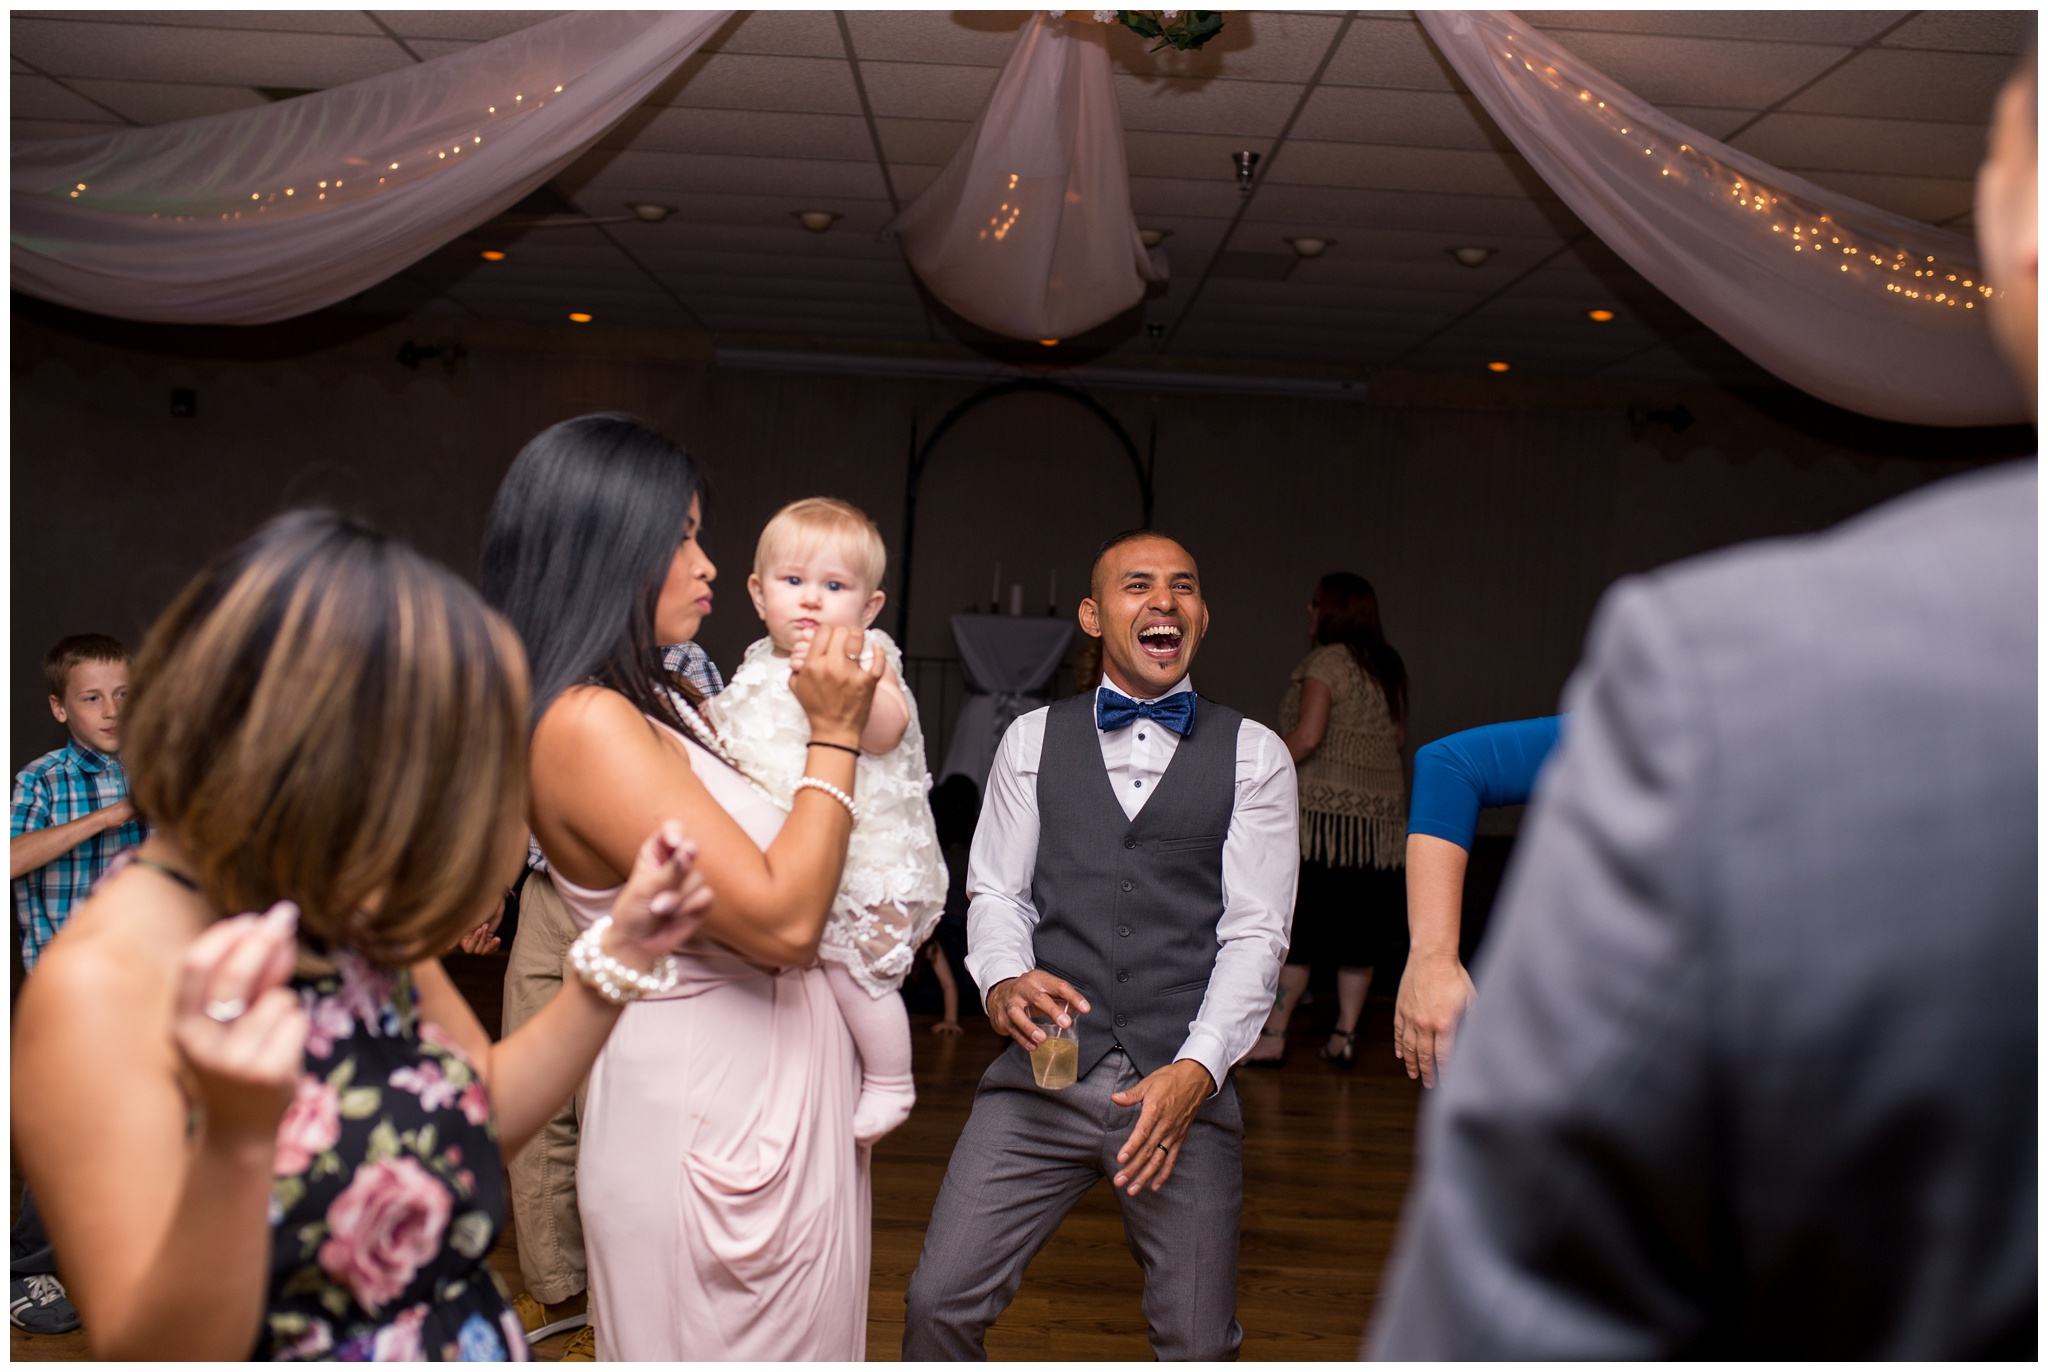 groom dancing with family during wedding reception at Romer's Catering in Greenville Ohio